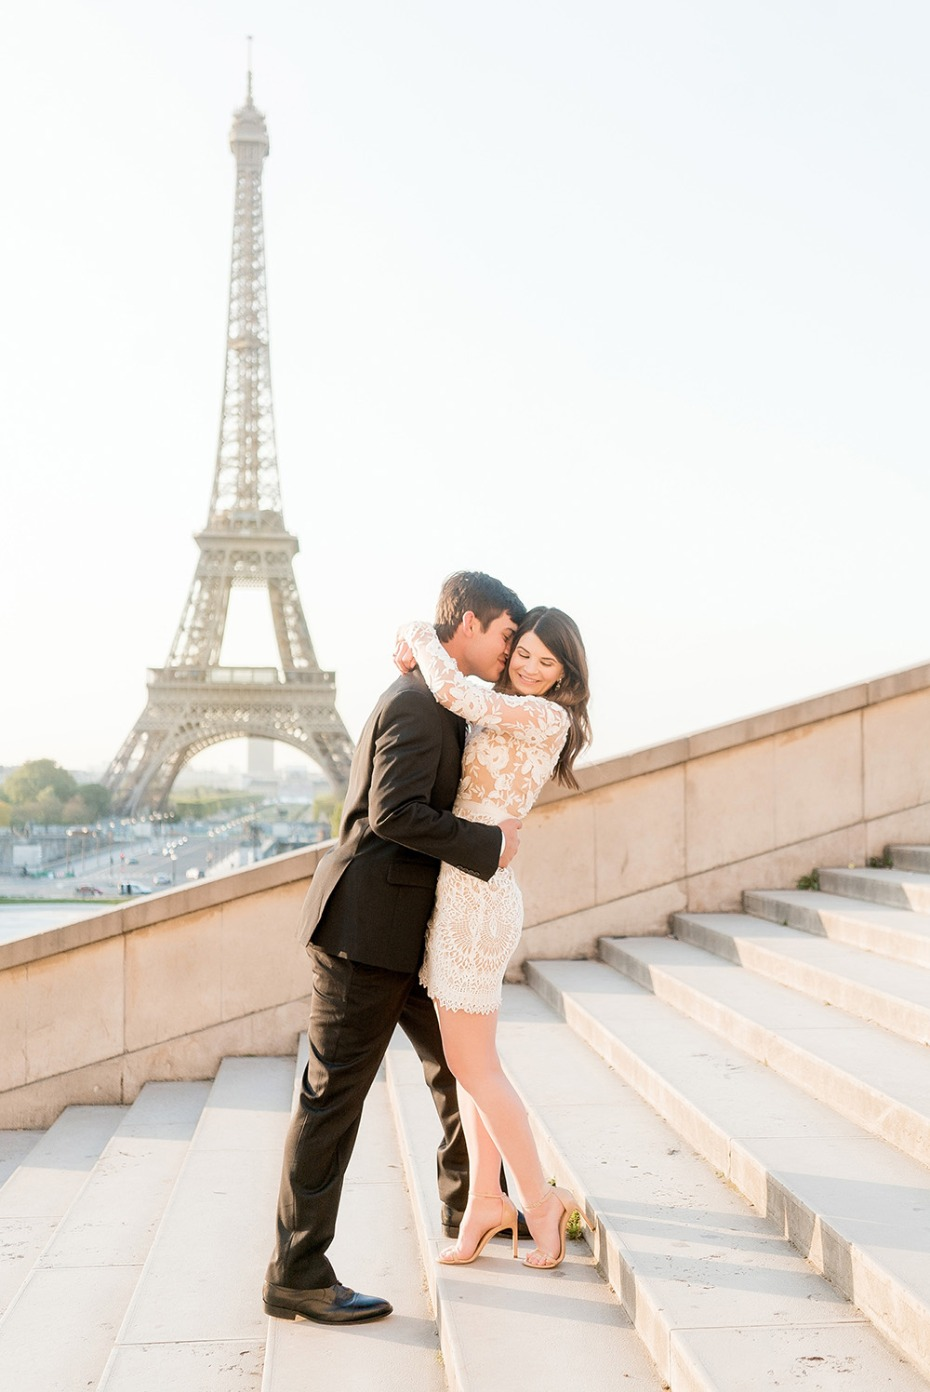 Paris Eiffel Tower Honeymoon Portrait